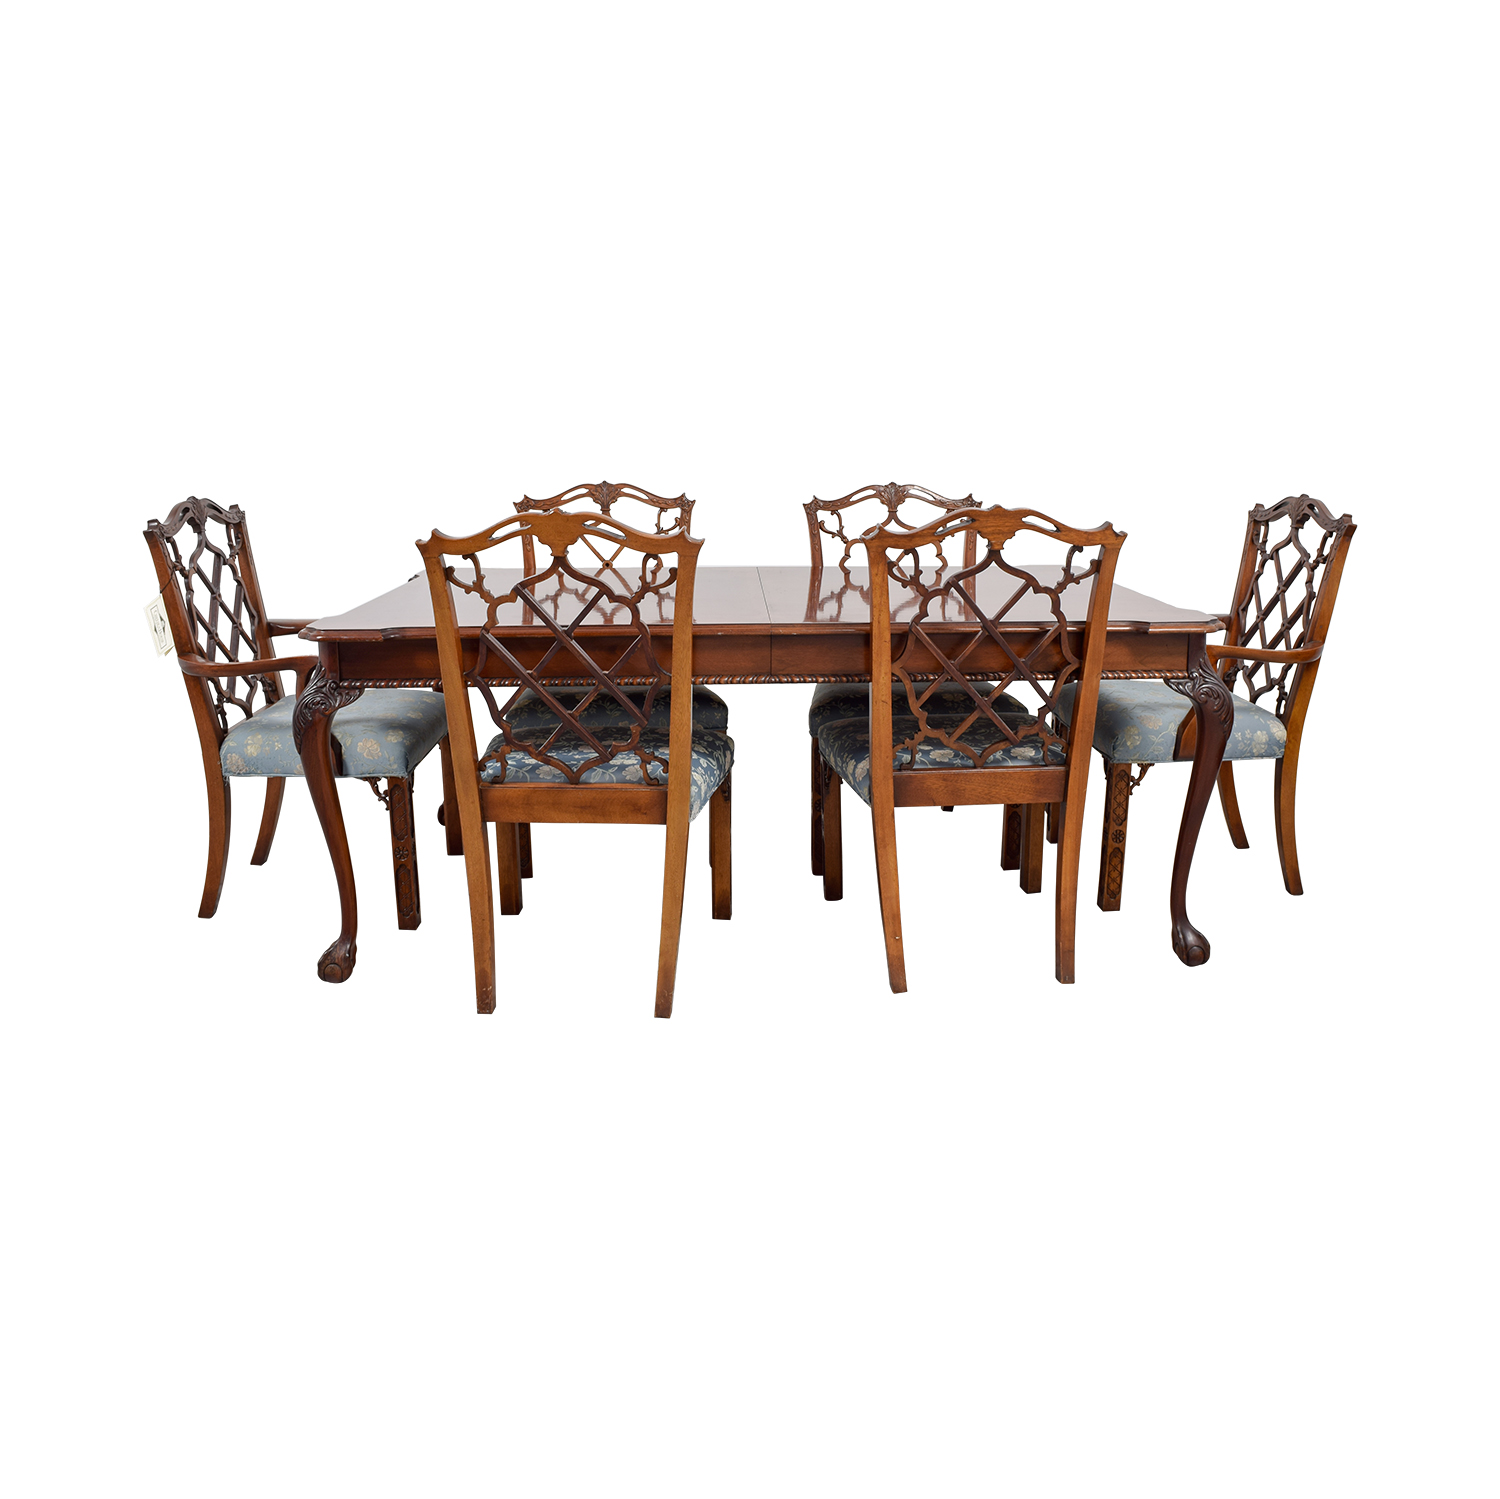 Fantastic 90 Off Century Dining Table With Extension Leaf And Chelsea Custom Upholstered Chairs Tables Unemploymentrelief Wooden Chair Designs For Living Room Unemploymentrelieforg